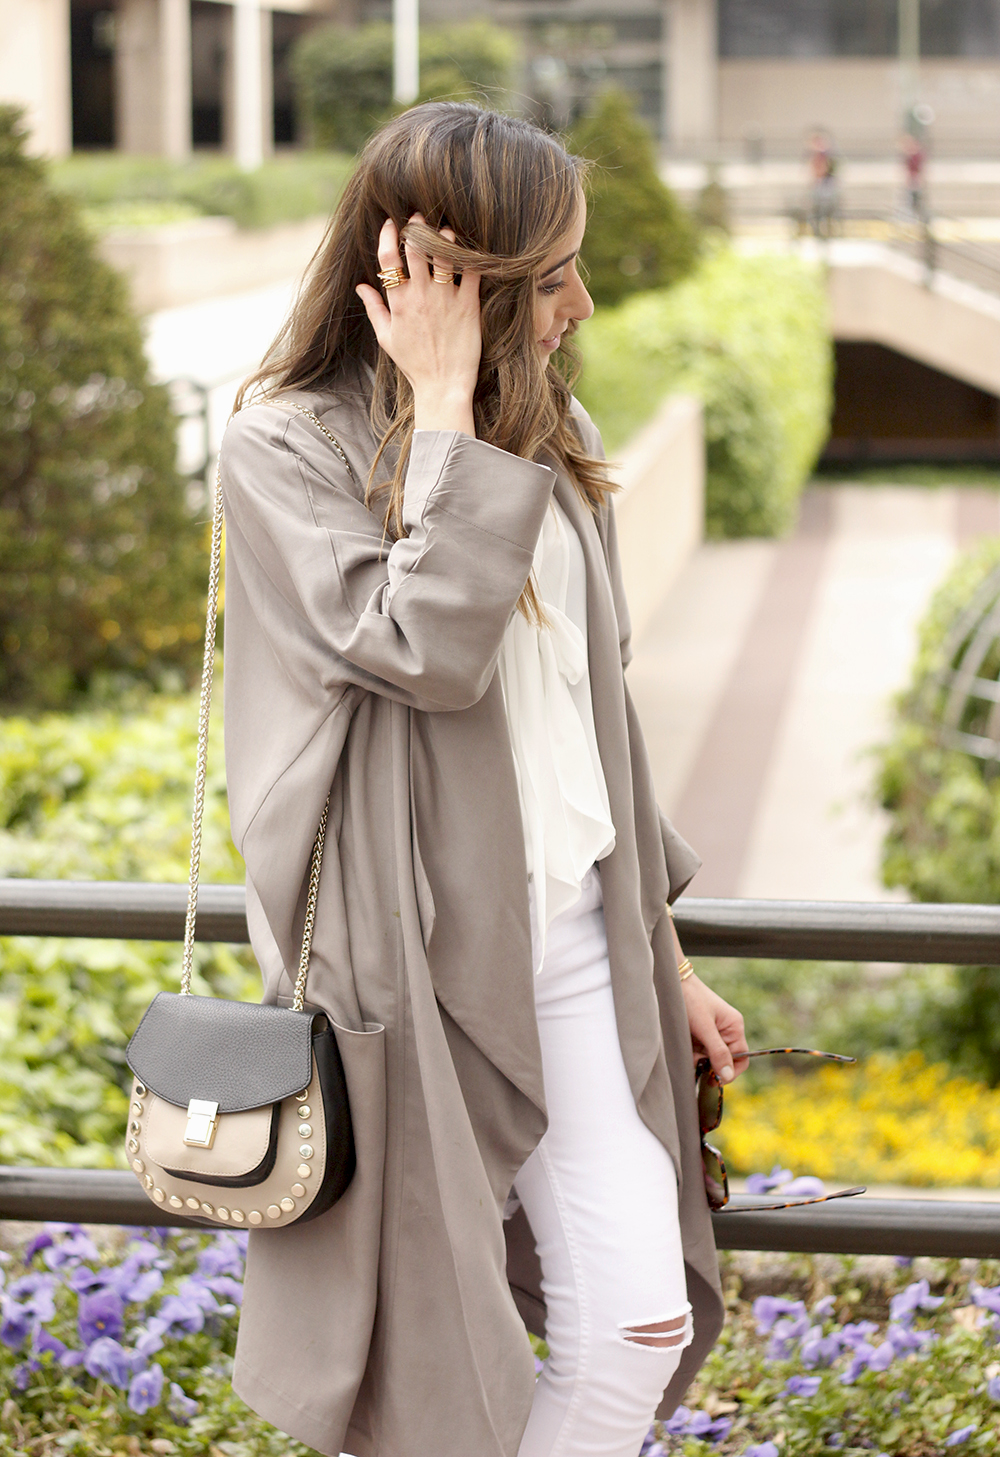 grey and white outfit trench spring streetstyle sunnies nude heels ripped jeans22